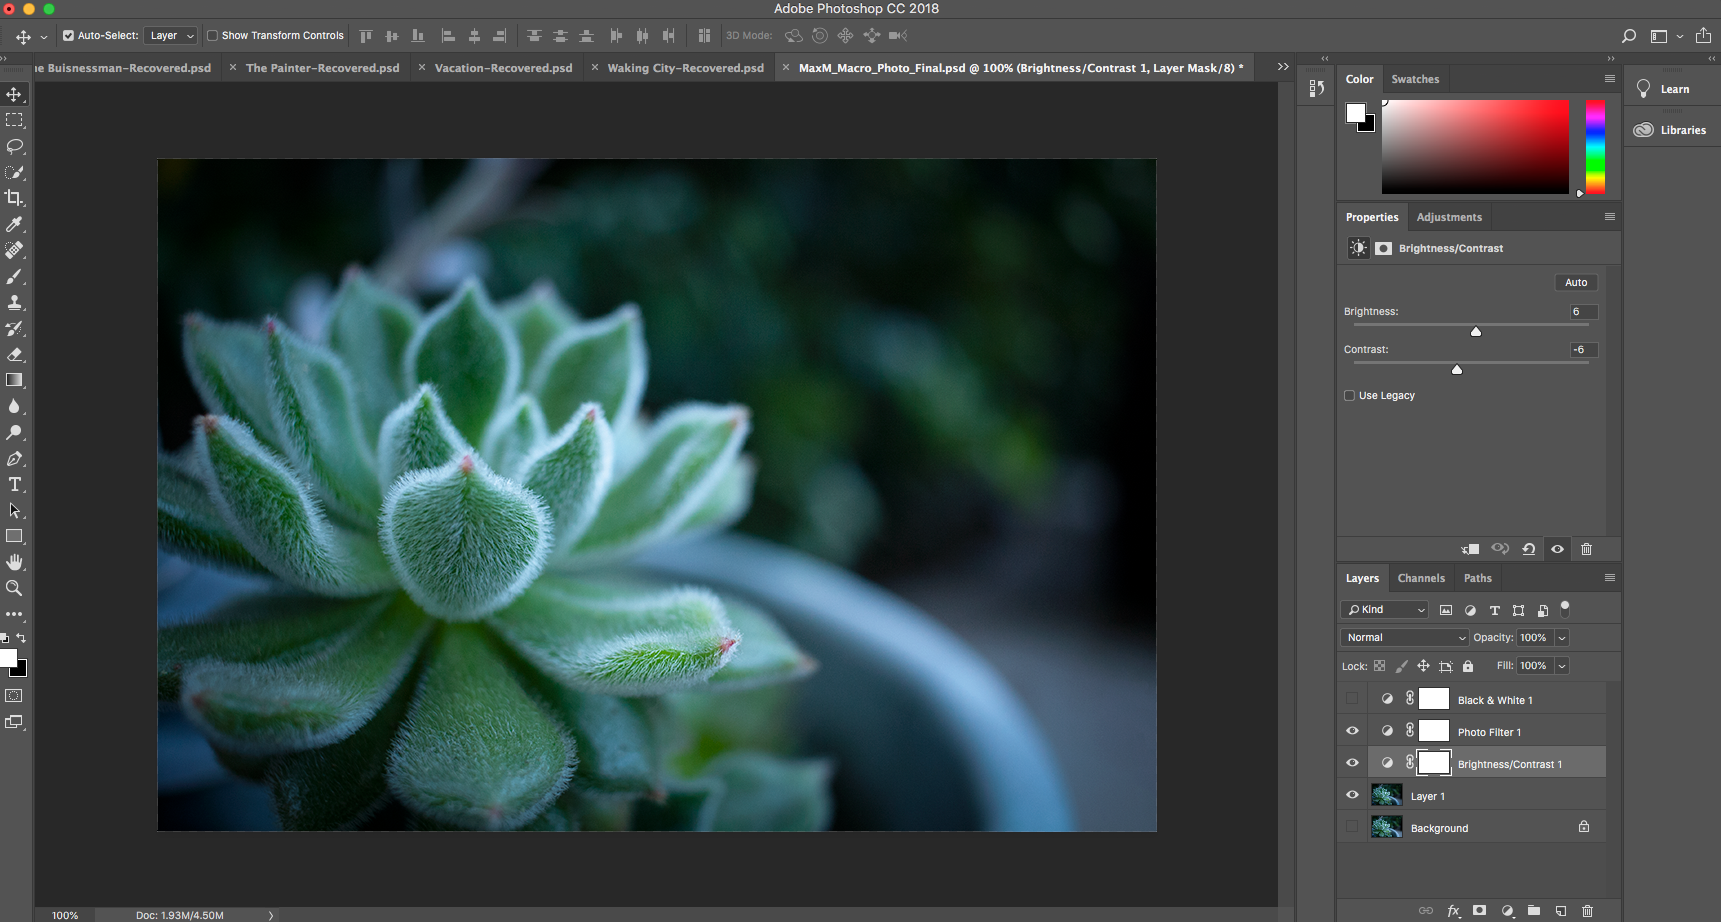 This is my adobe photoshop workspace I used in creating my macro photo and conceptual photo.